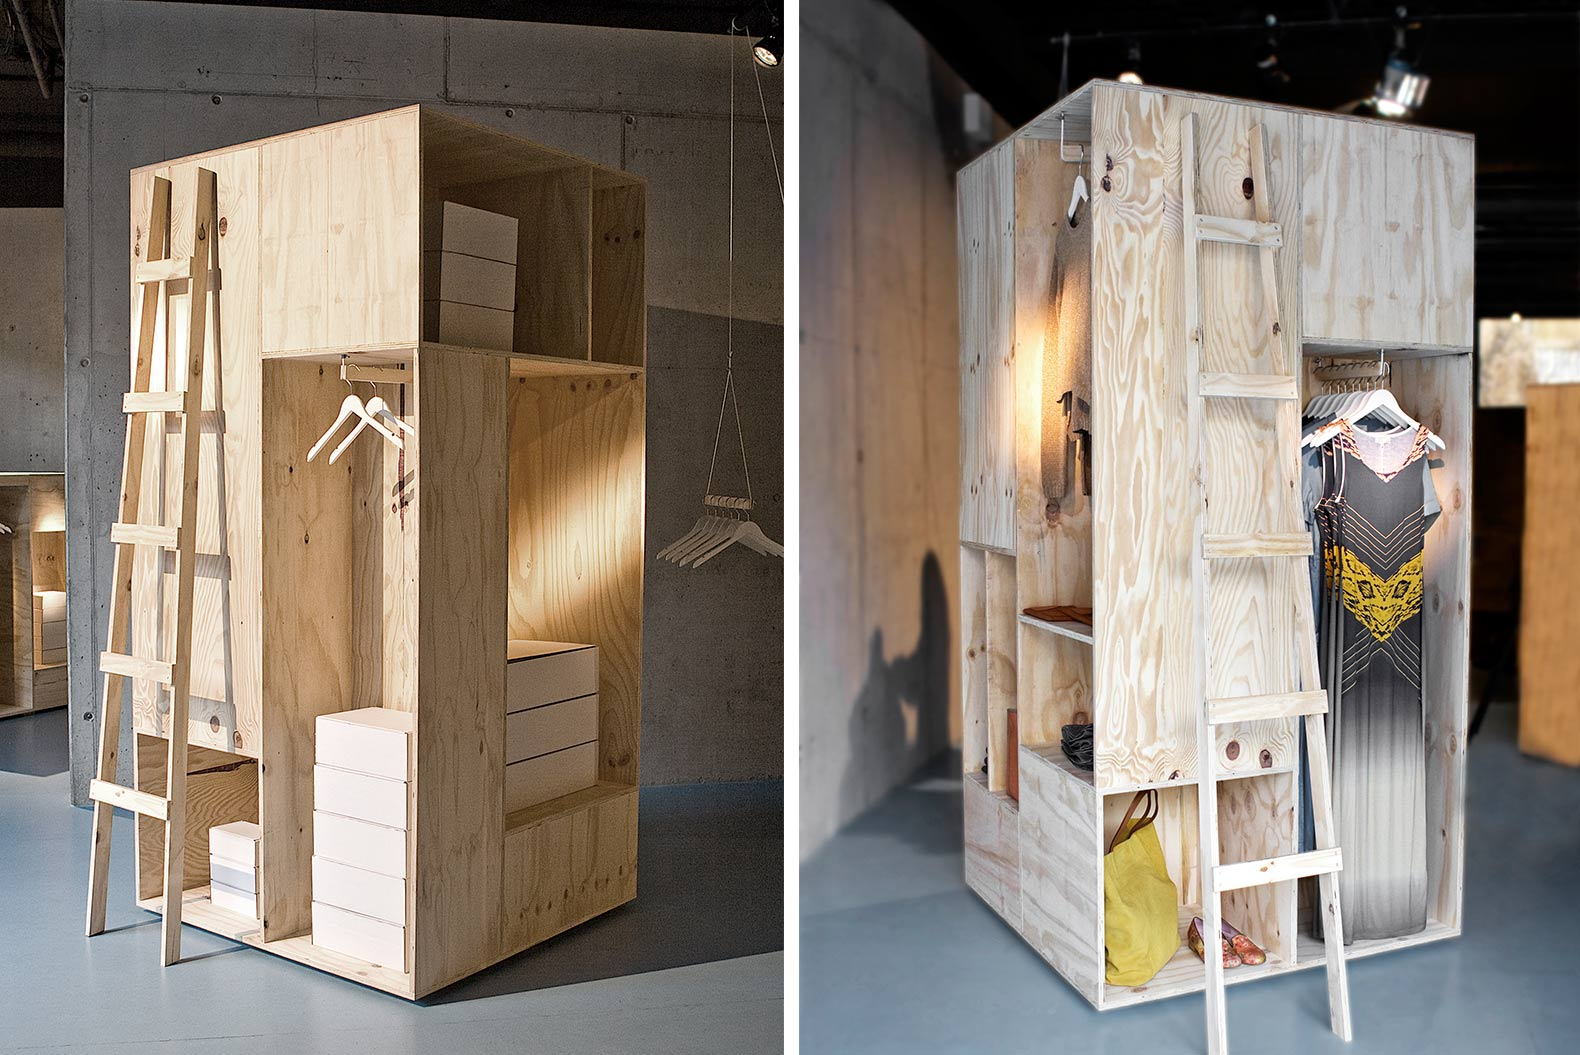 Sigurd Larsen, wooden wardrobes, Berlin, wooden shipping containers, shipping crates,